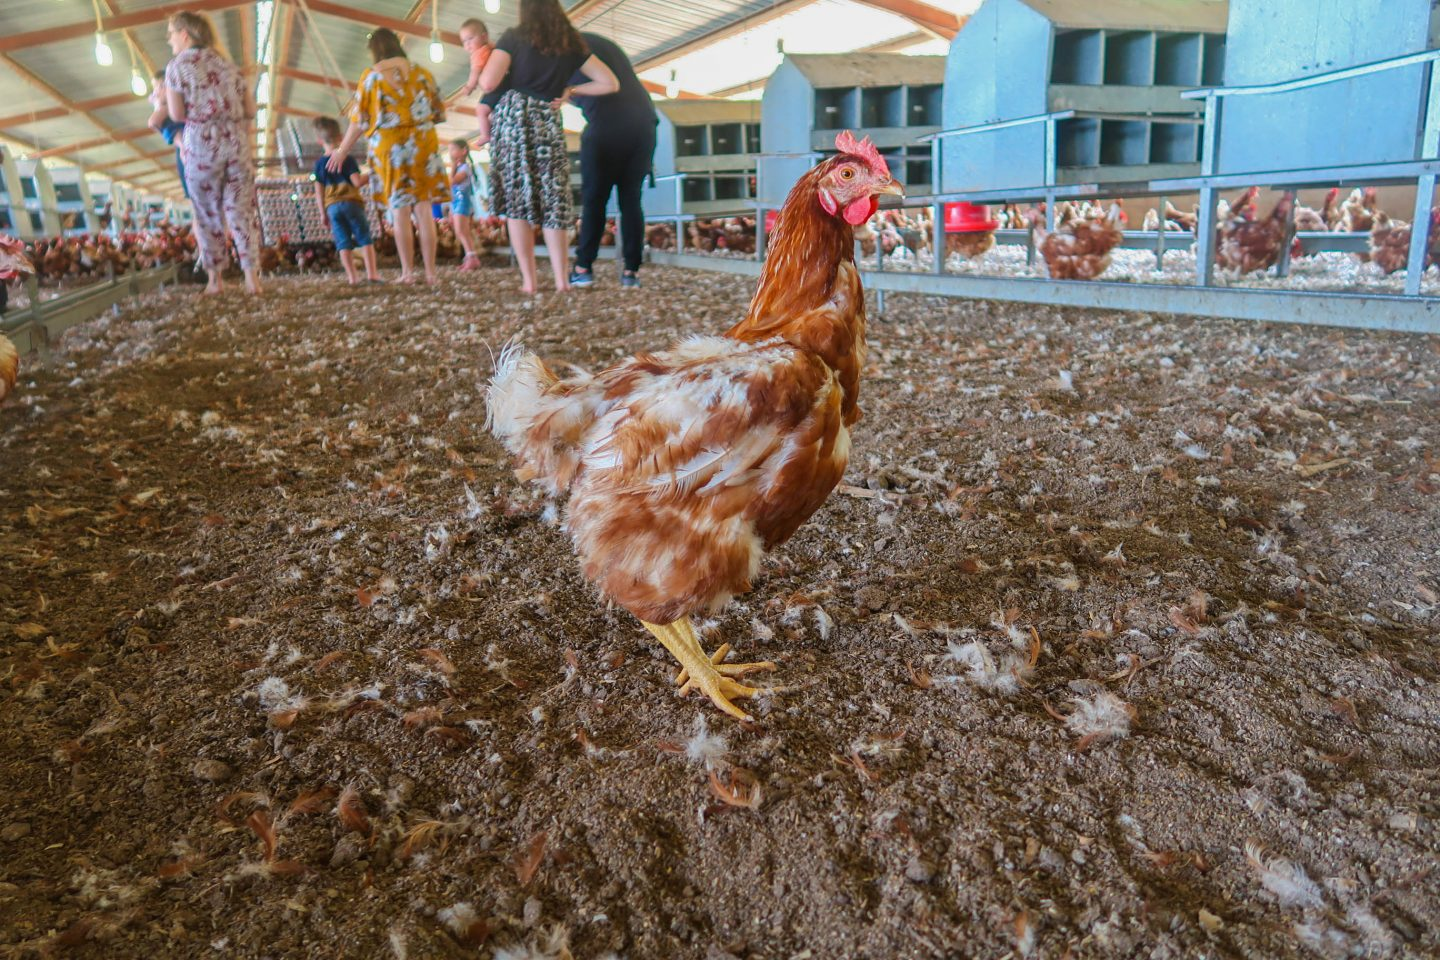 Cage free barns for hens